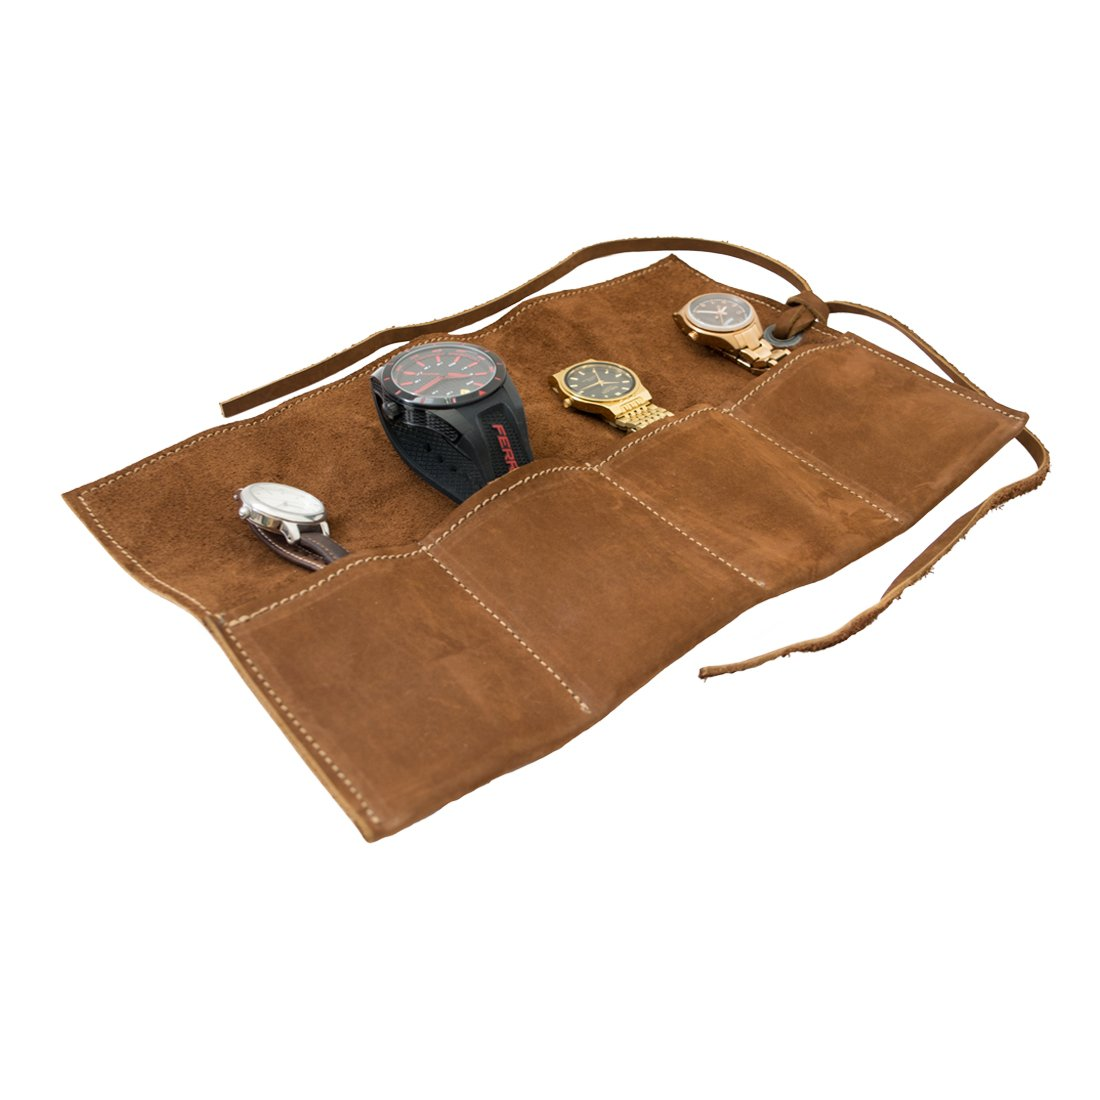 Hide & Drink Soft Leather Travel Watch Roll Organizer Holds Up to 4 Watches Handmade Swayze Suede